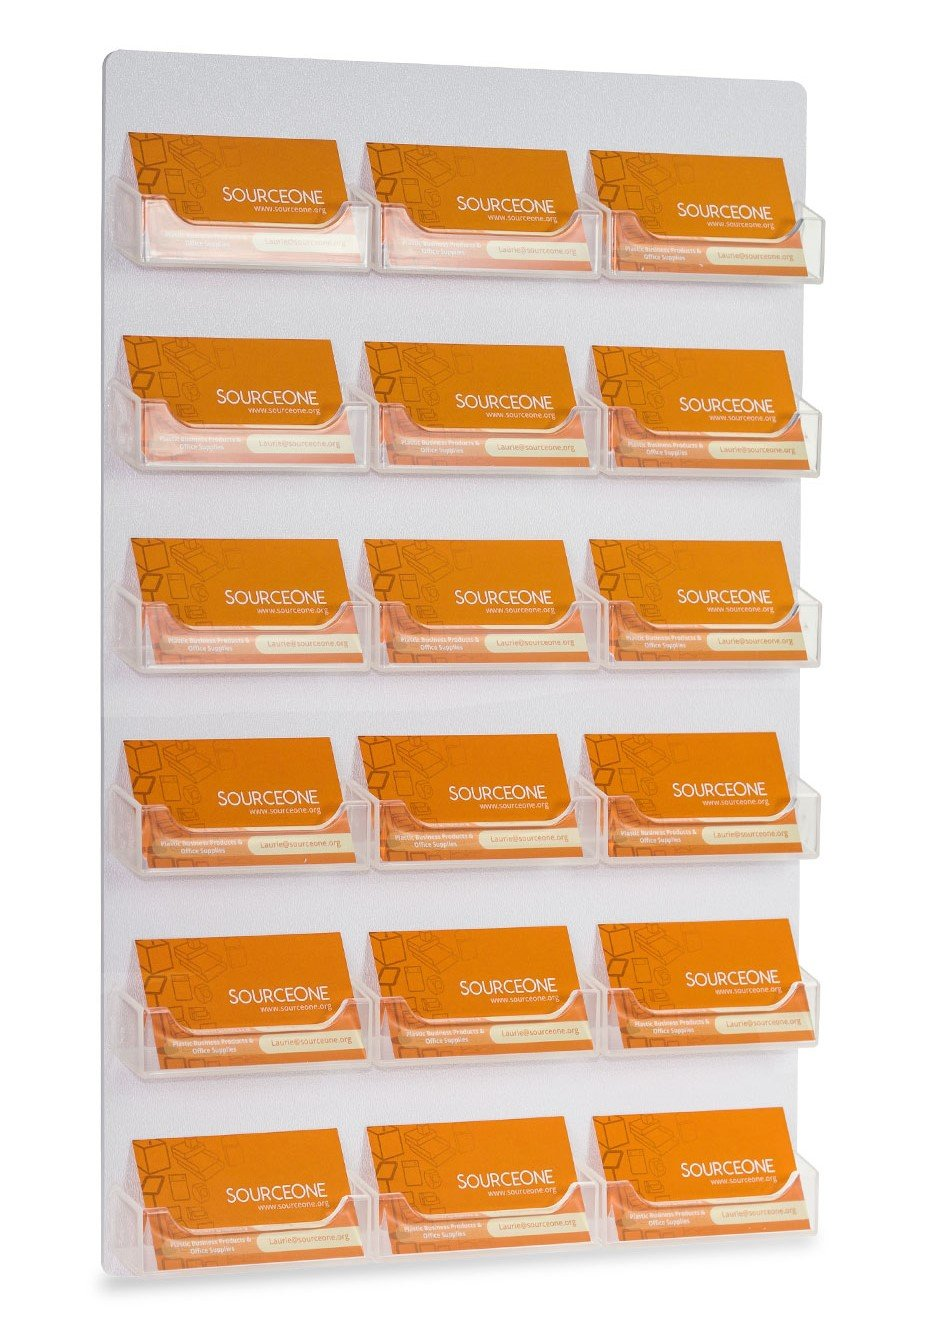 Amazon.com : Source One Business Card/Gift Card Display Holder with ...